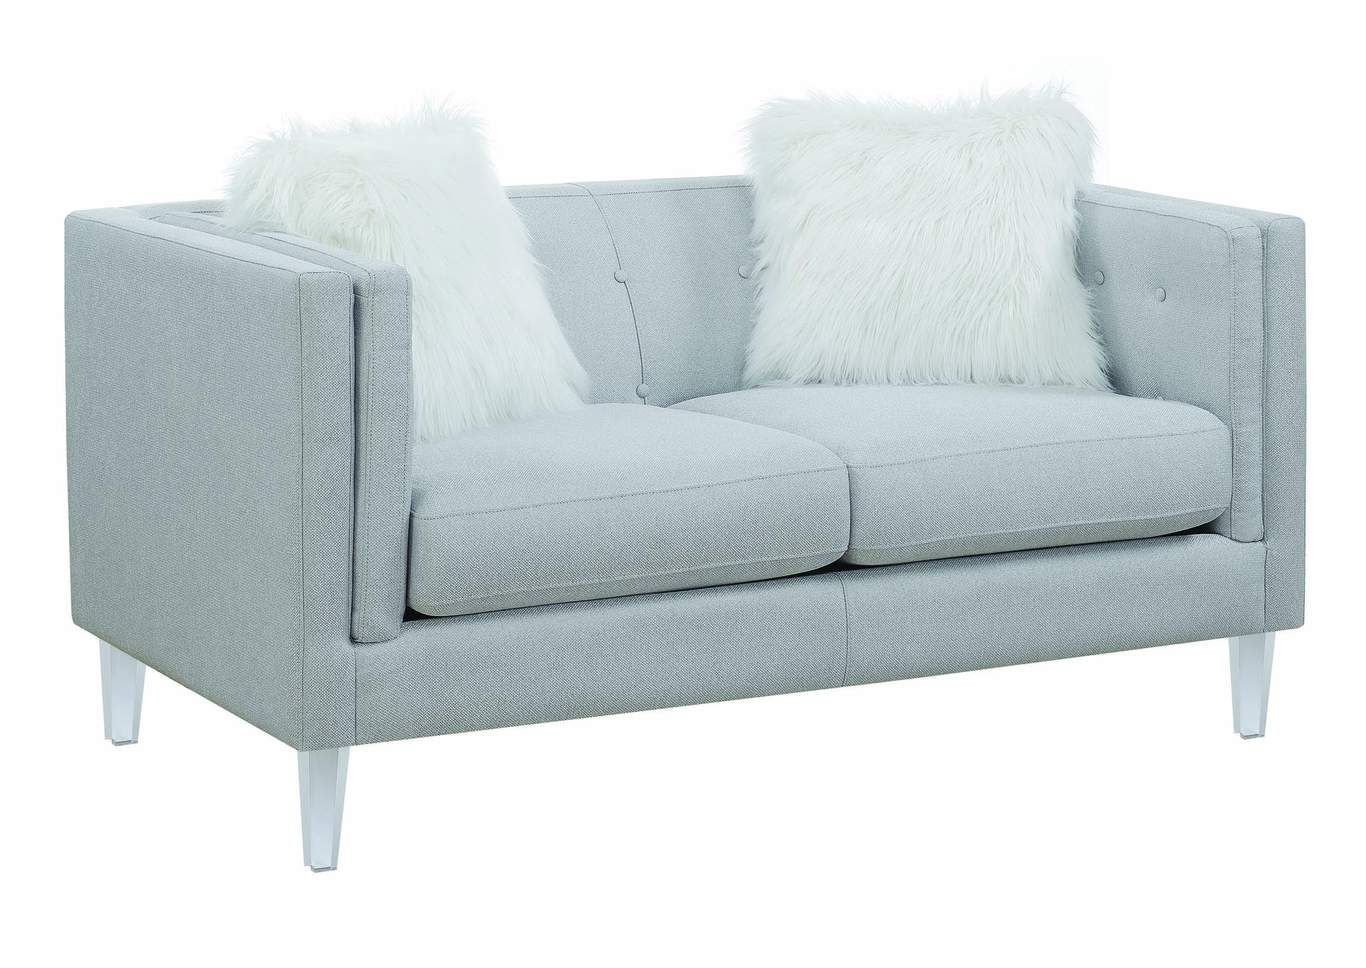 Awe Inspiring Irving Blvd Furniture Hemet Light Grey Loveseat Gmtry Best Dining Table And Chair Ideas Images Gmtryco